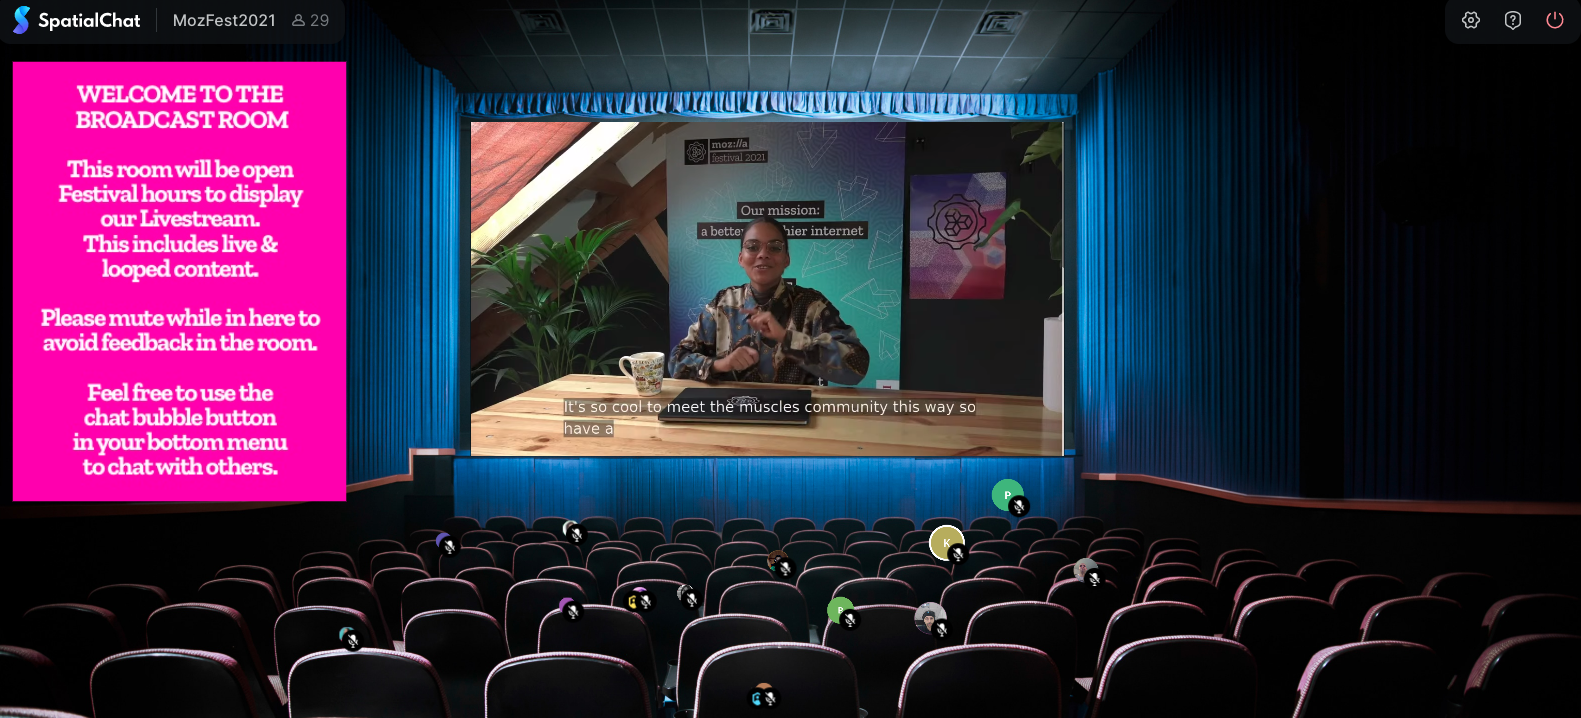 Virtual room that looks like a movie theater with a person on the big screen. A pink box is on the left hand side with instructions on how to use the room.